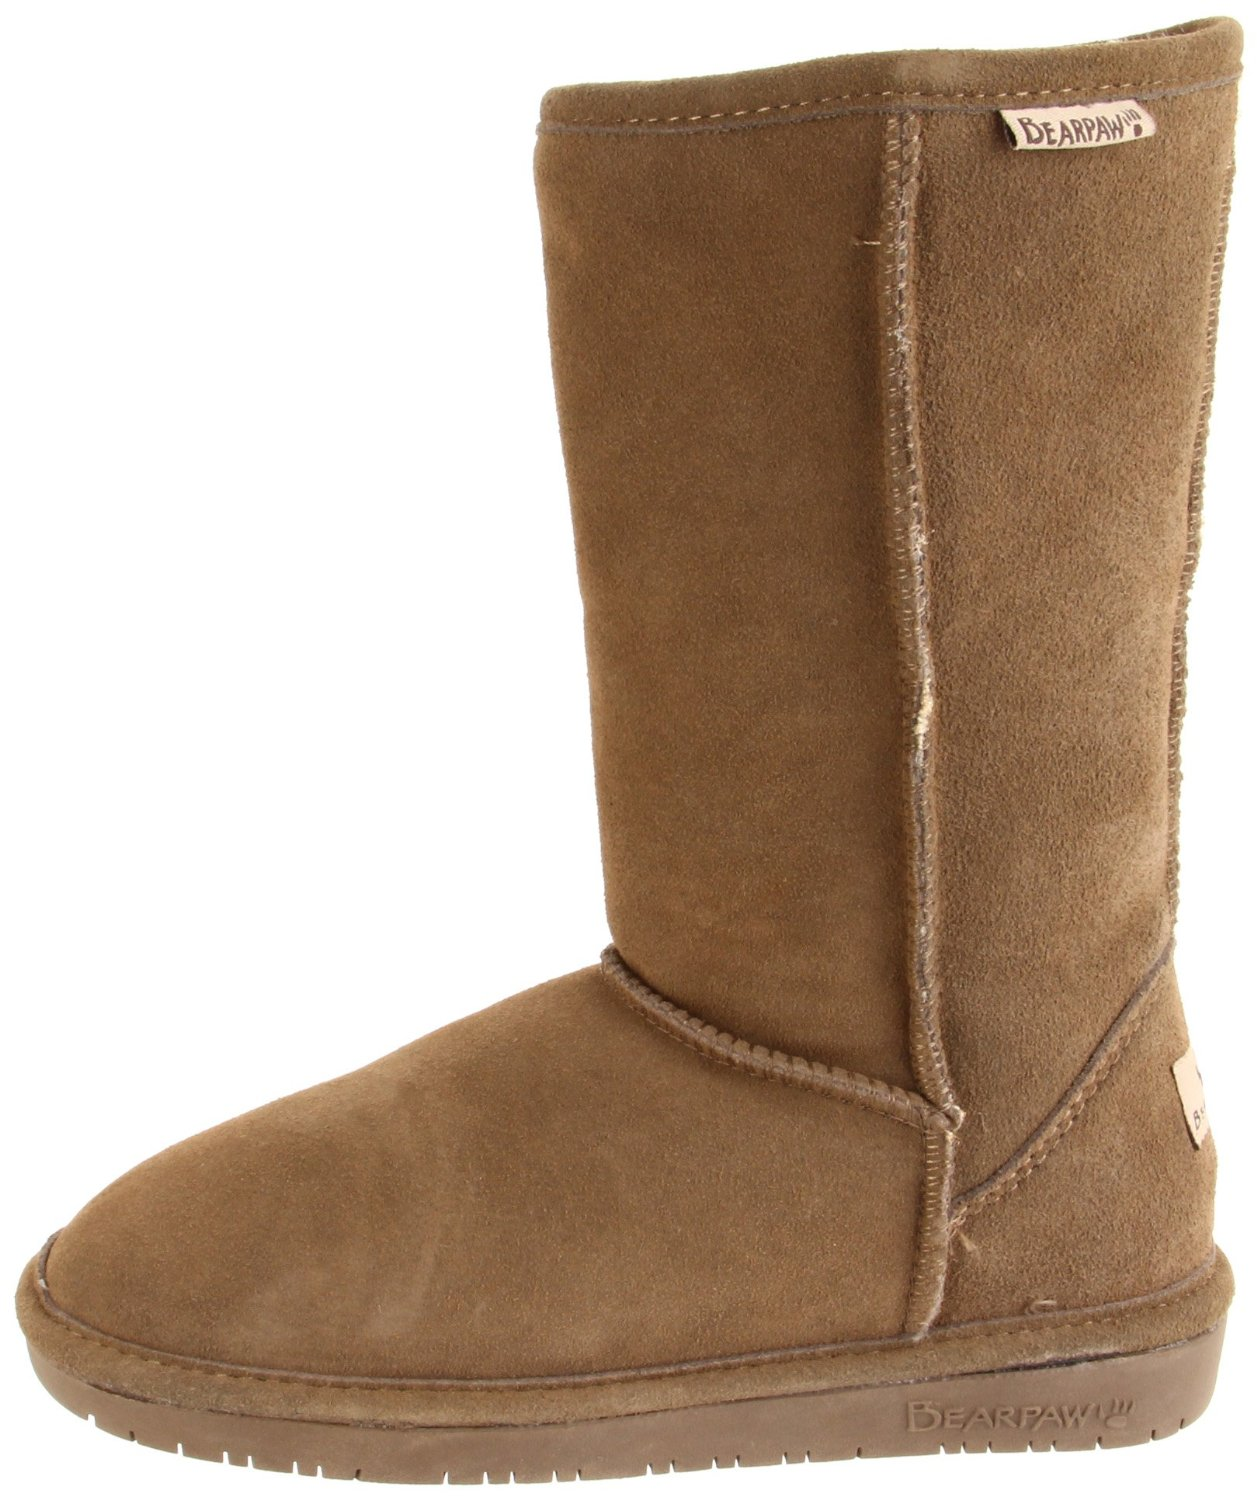 boots fashion pic boots bearpaw